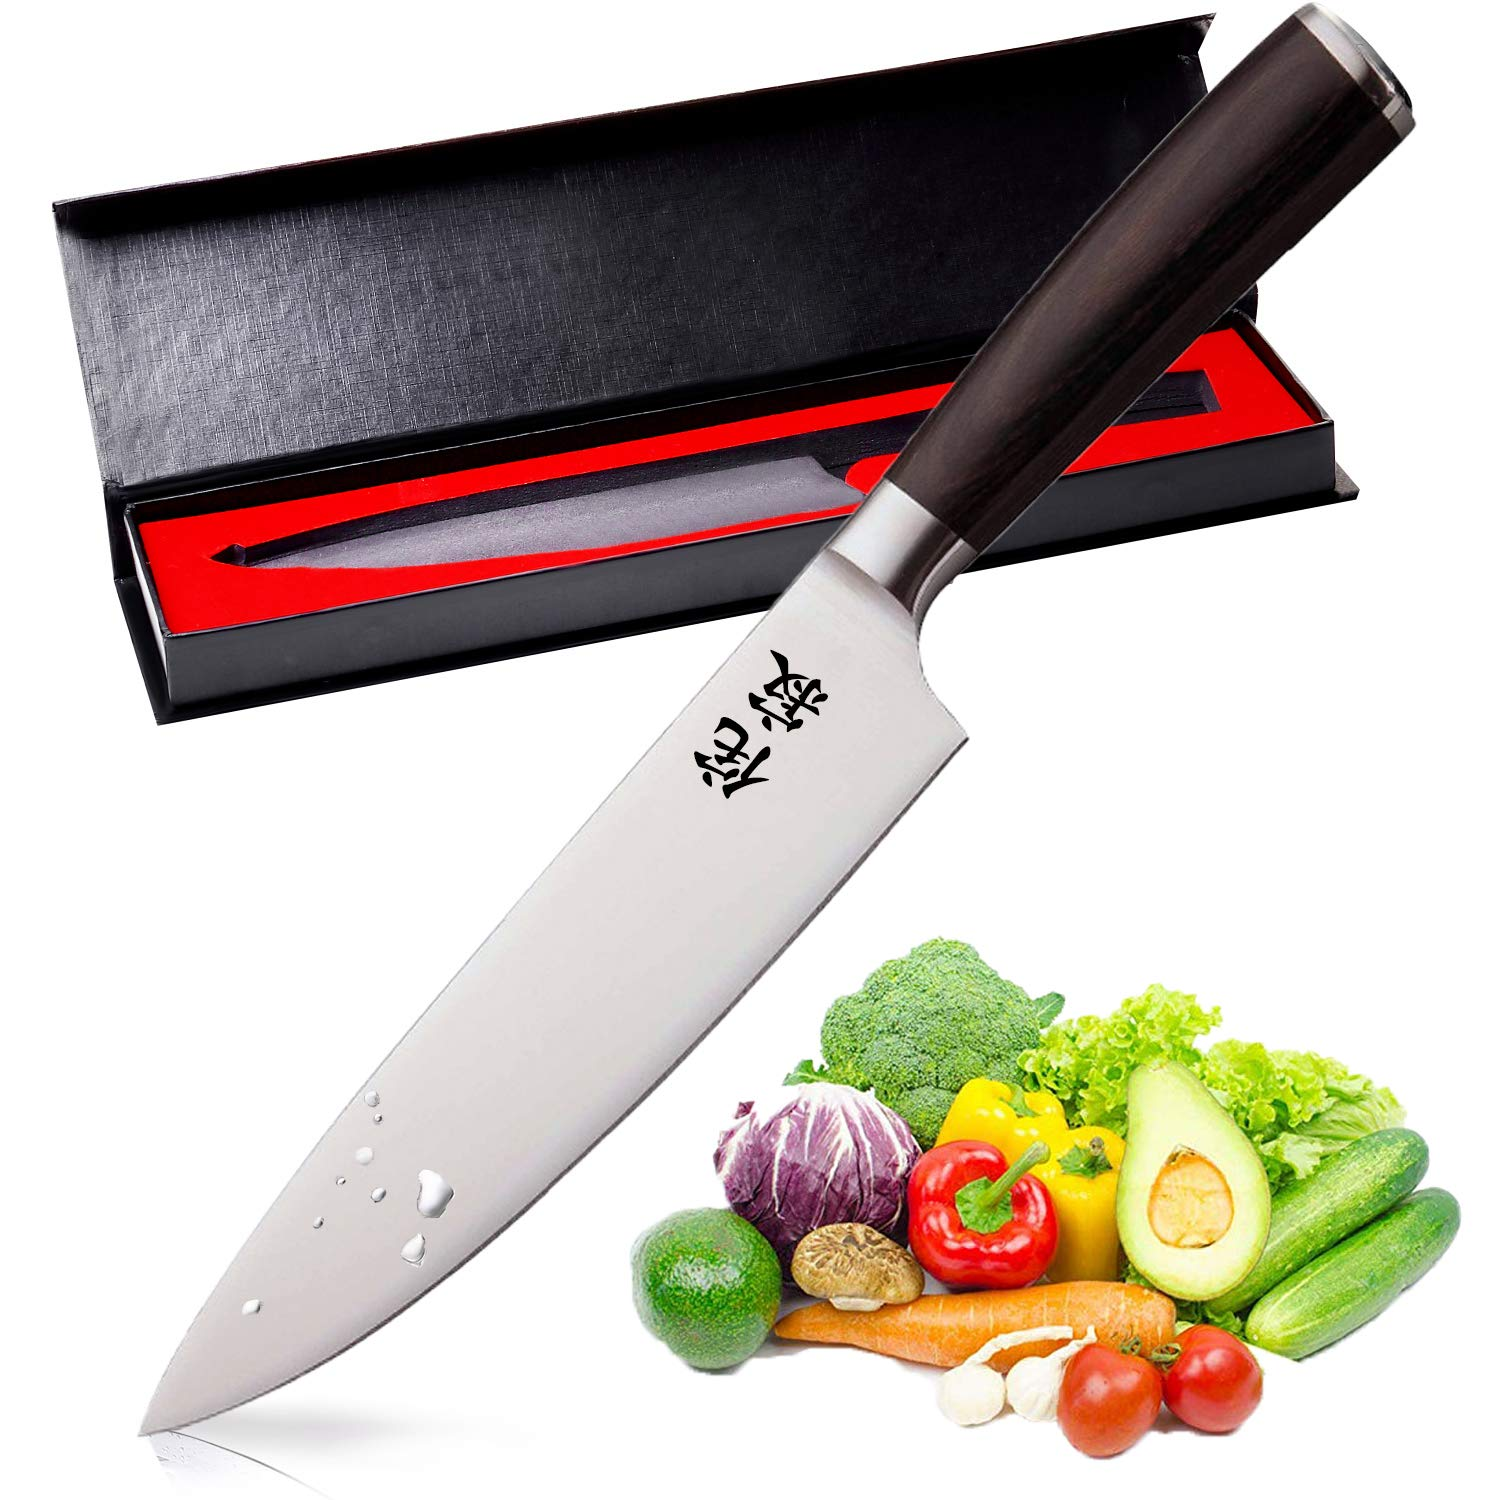 WABI×SABI Pro Kitchen 8 Inch Chef's Knife High Carbon Stainless Steel Sharp Gyutou Knives Japan Quality